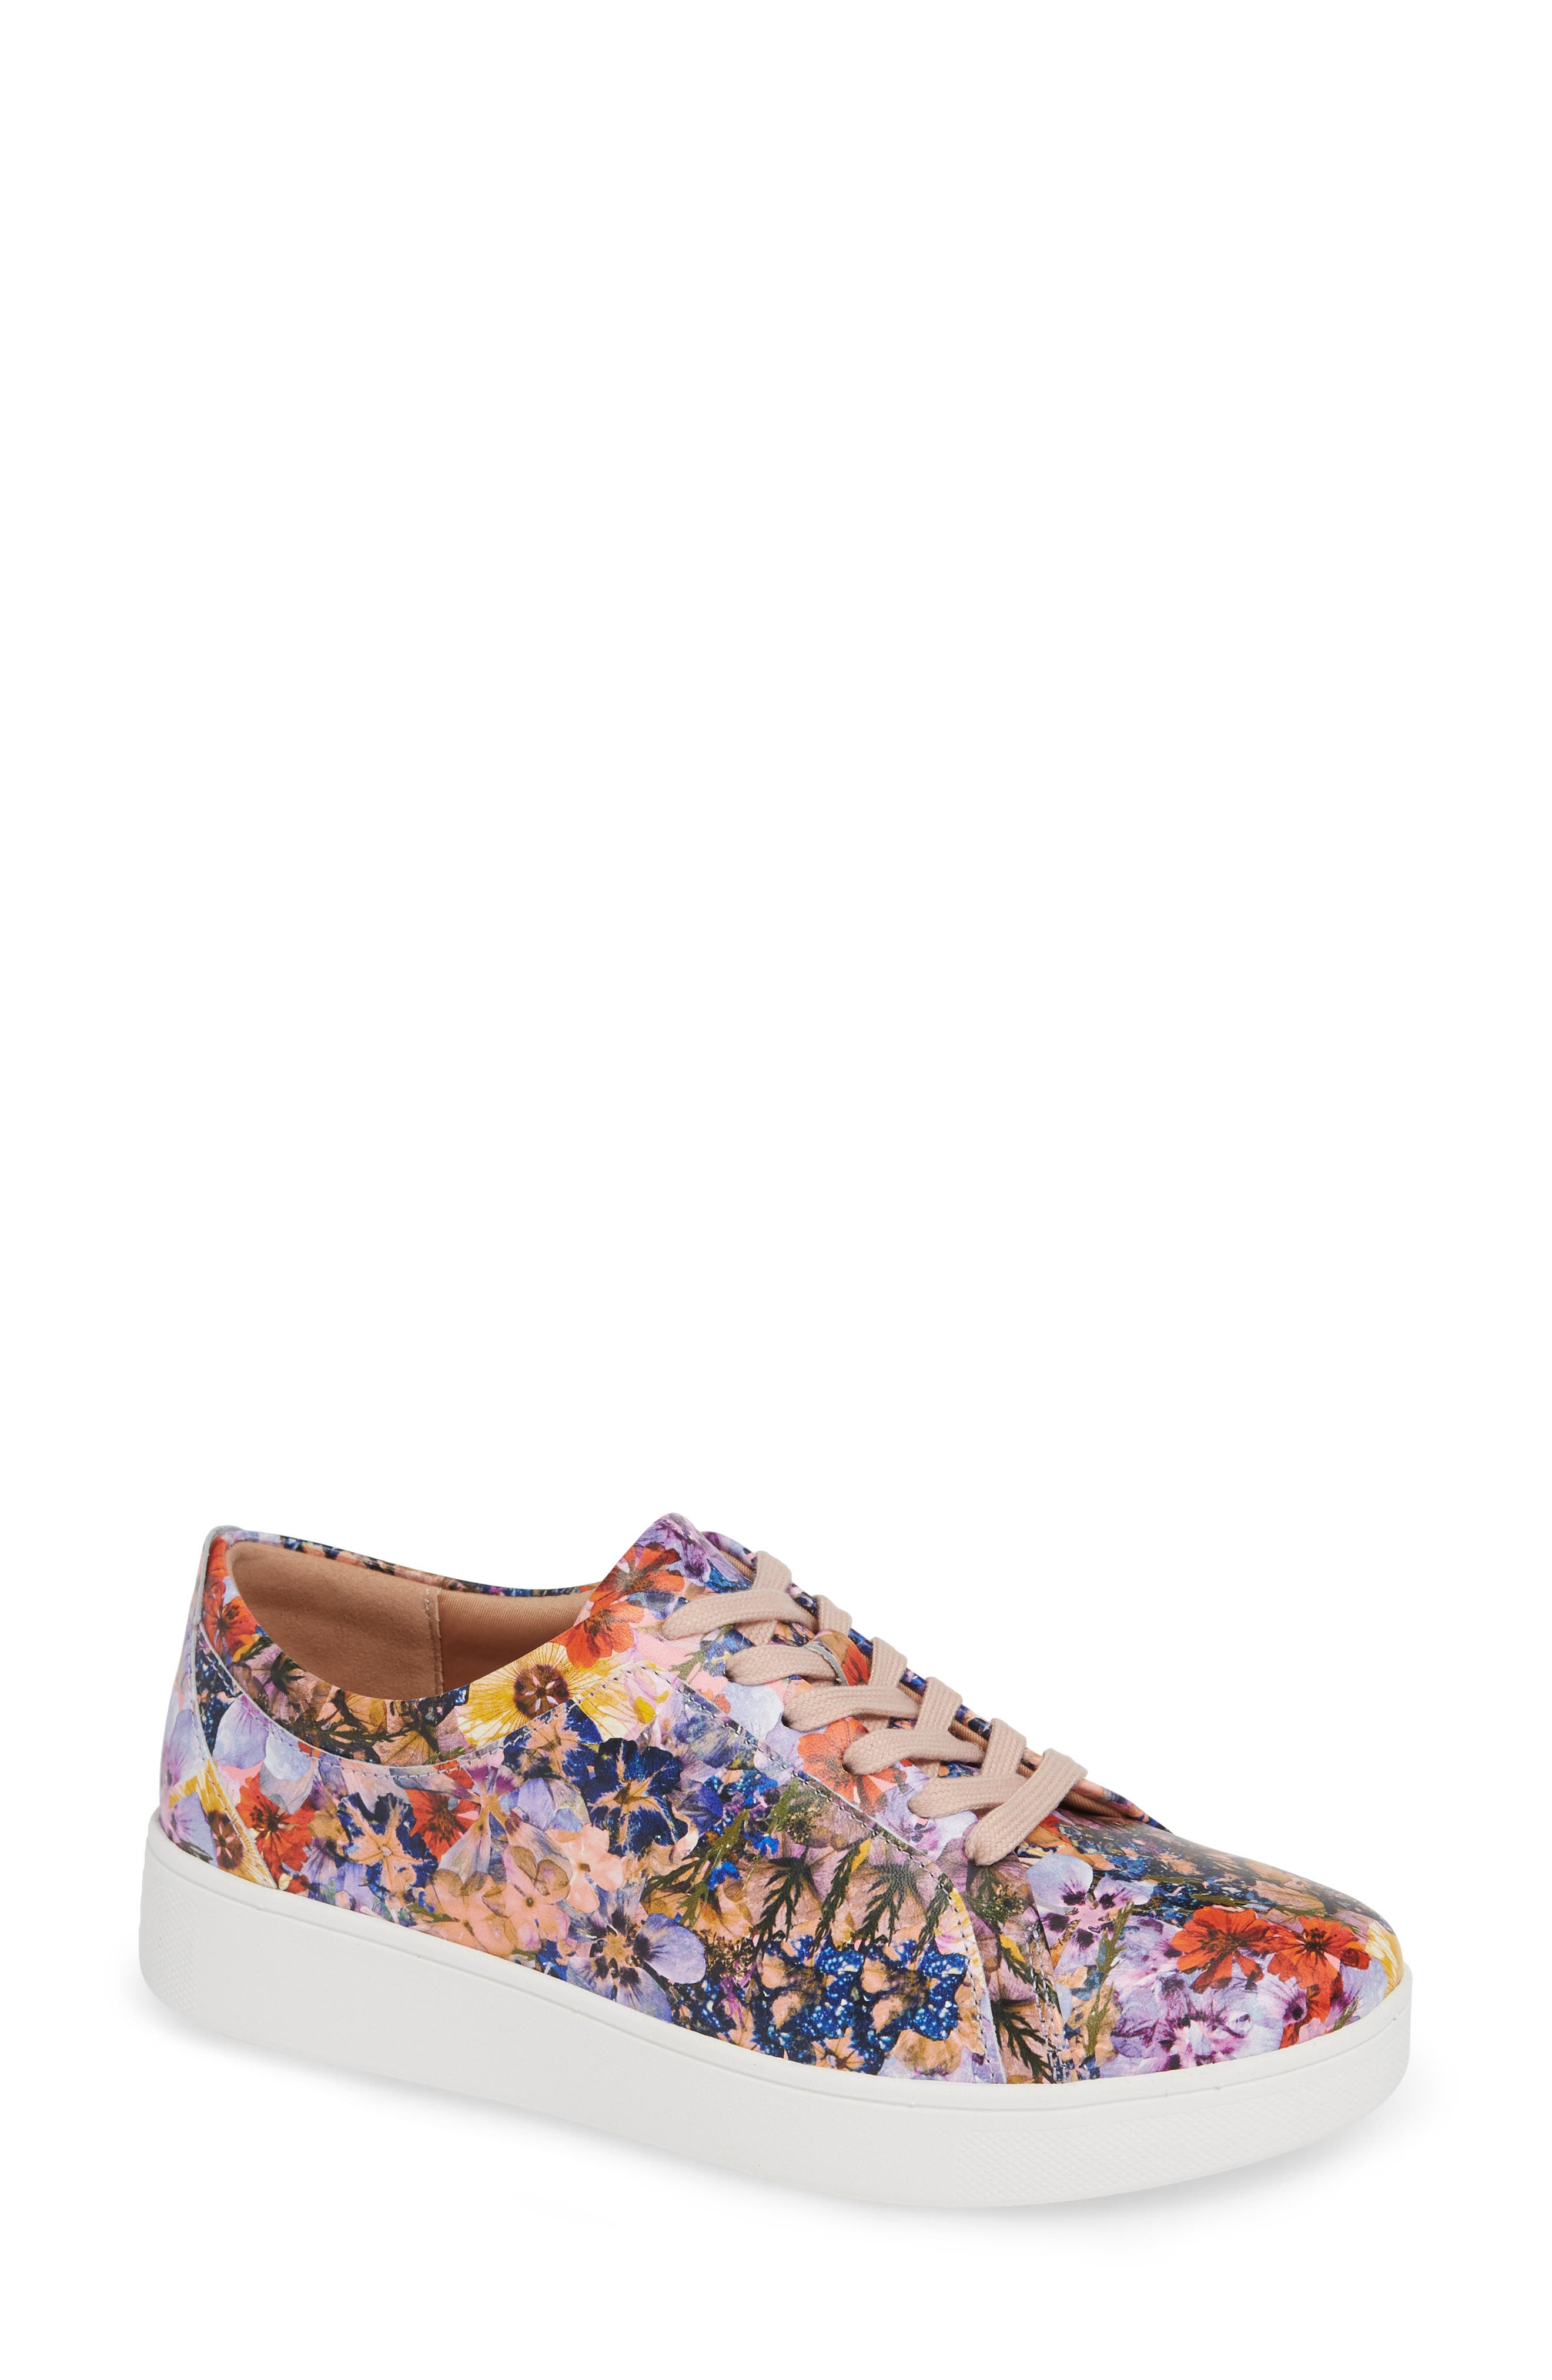 FITFLOP Rally Flower Crush Leather Sneaker, Main, color, OYSTER PINK FLOWER